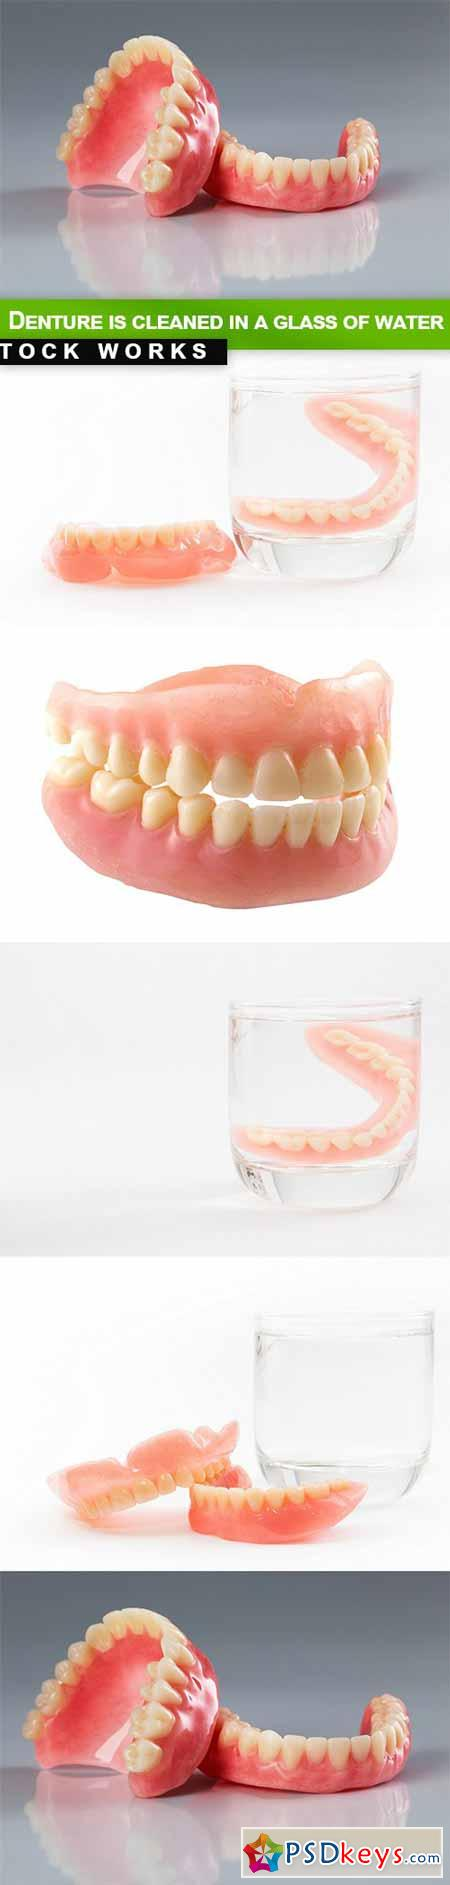 Denture is cleaned in a glass of water - 5 UHQ JPEG